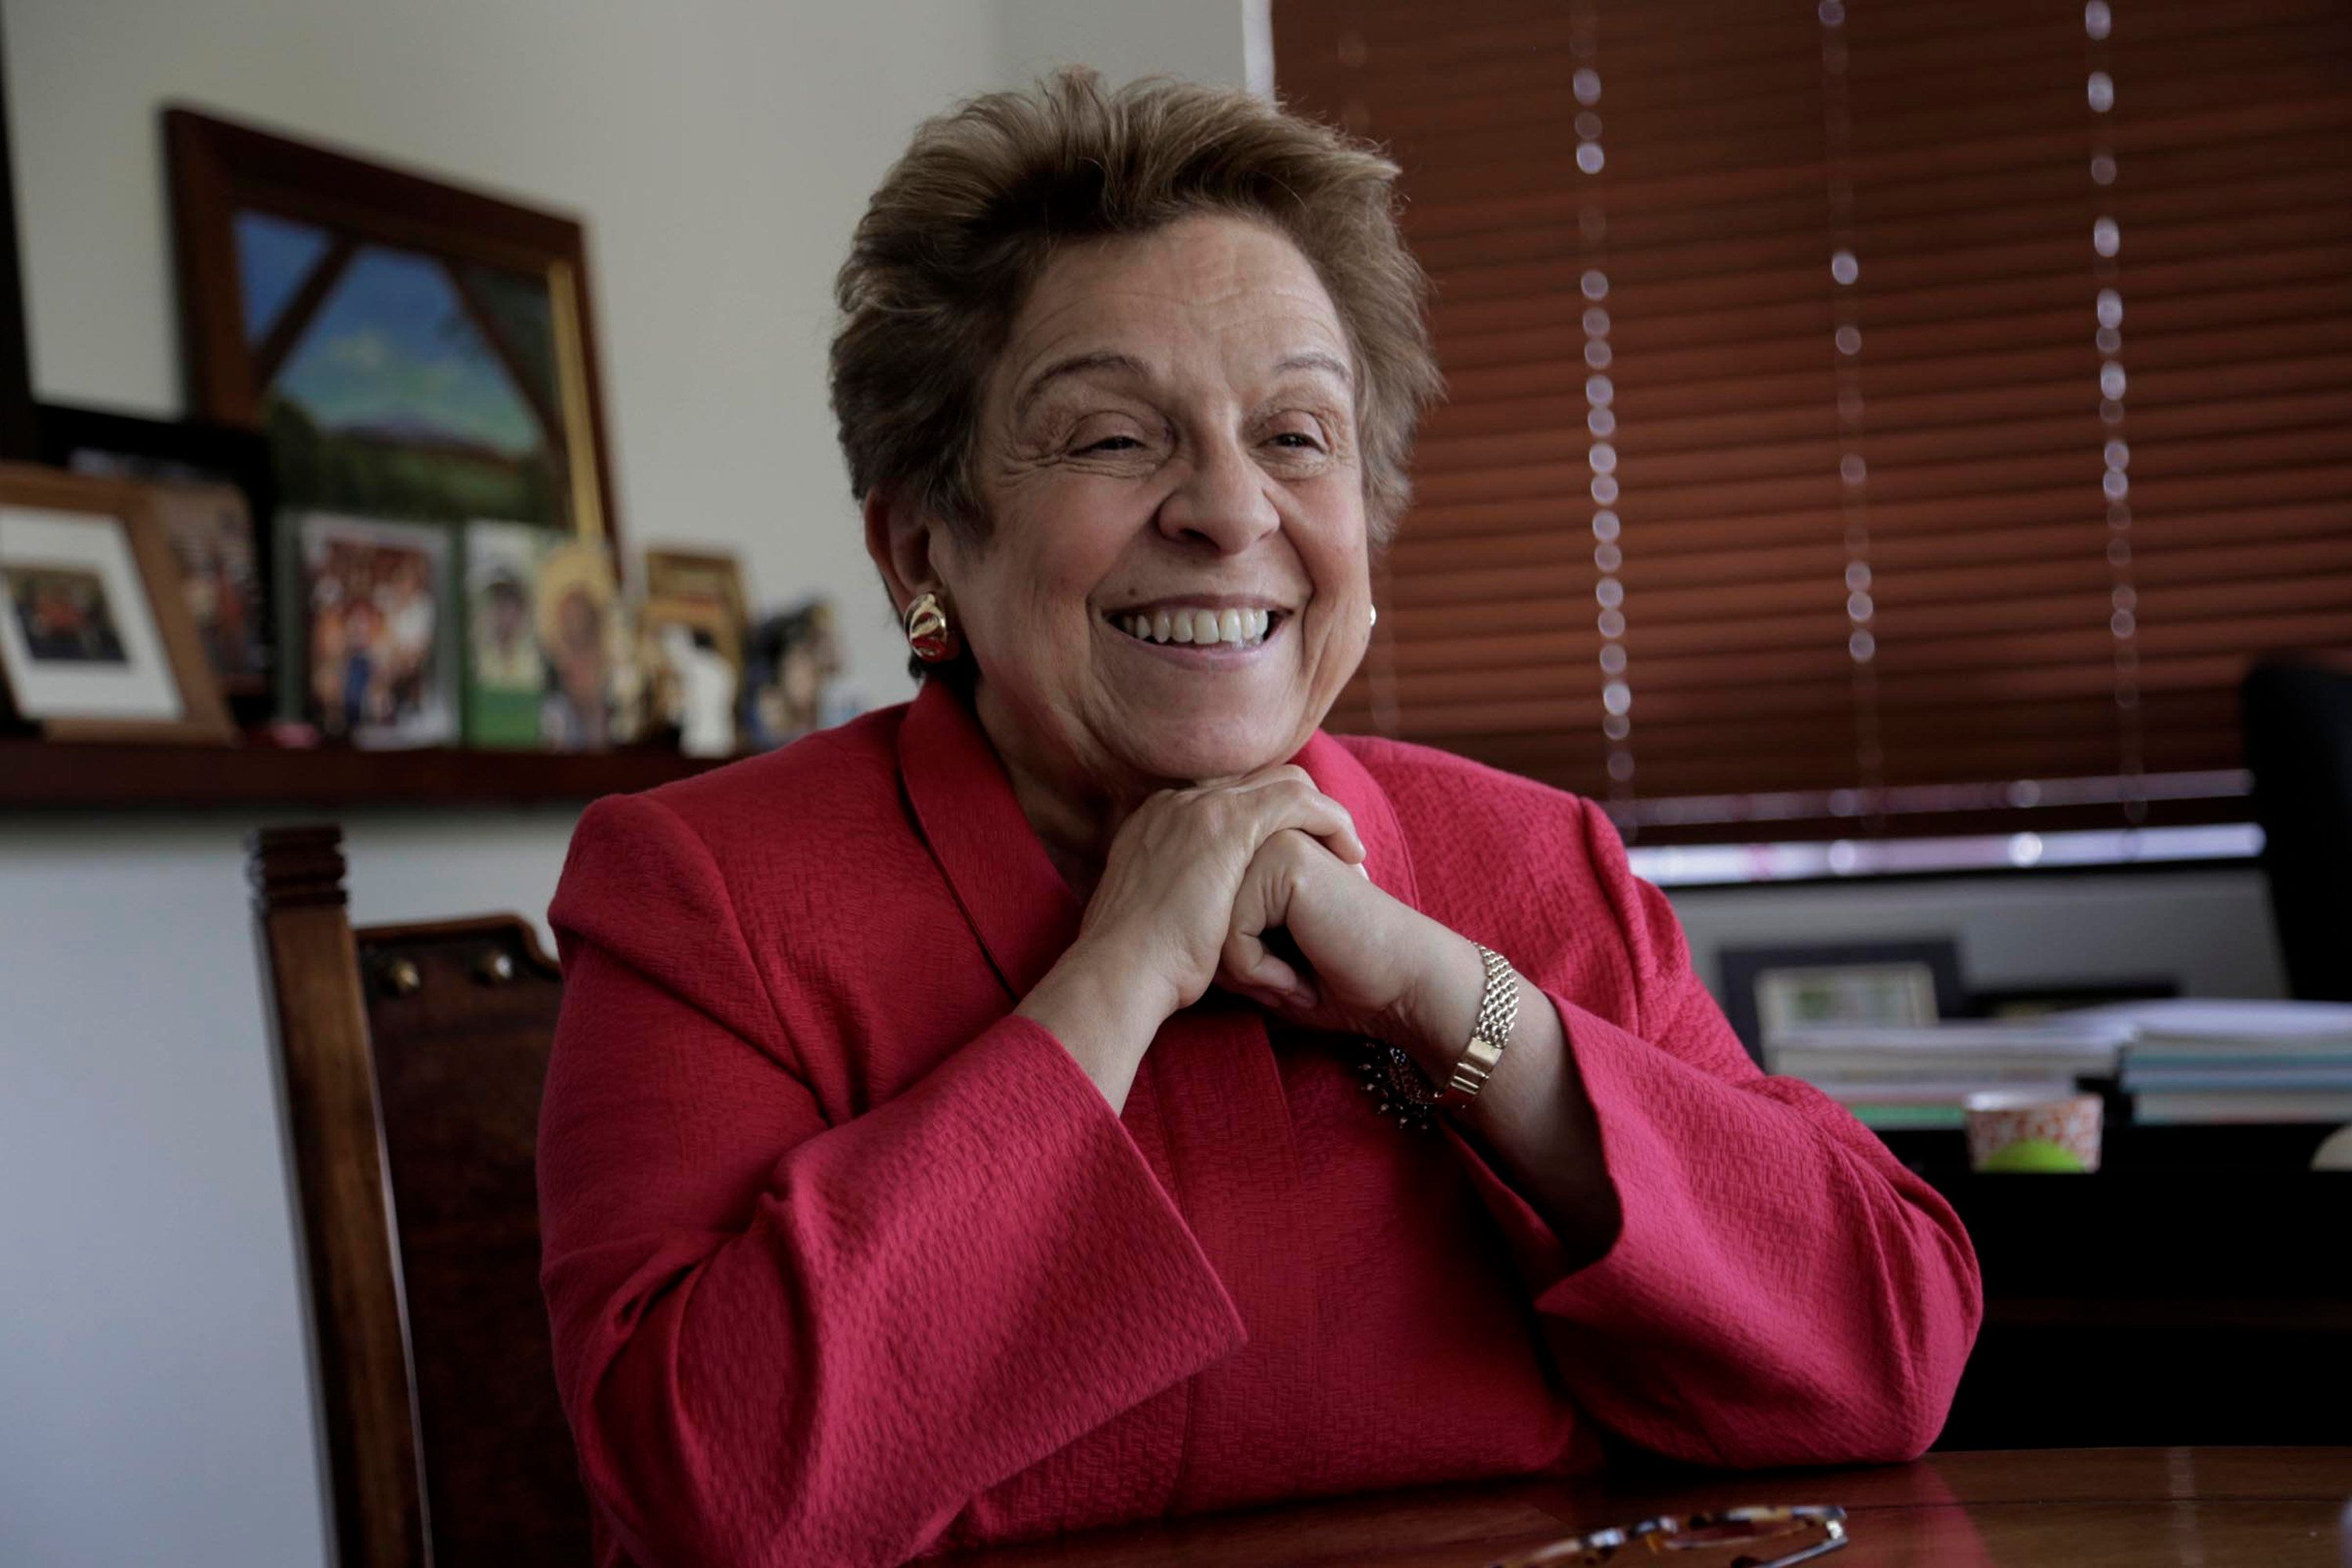 Donna Shalala, seen here on Feb. 13, 2018, filed paperwork to run for Congress, shaking up a crowded Democratic field seeking to replace the retiring Republican Rep. Ileana Ros-Lehtinen. (Jose A. Iglesias/el Nuevo Herald/TNS via Getty Images)